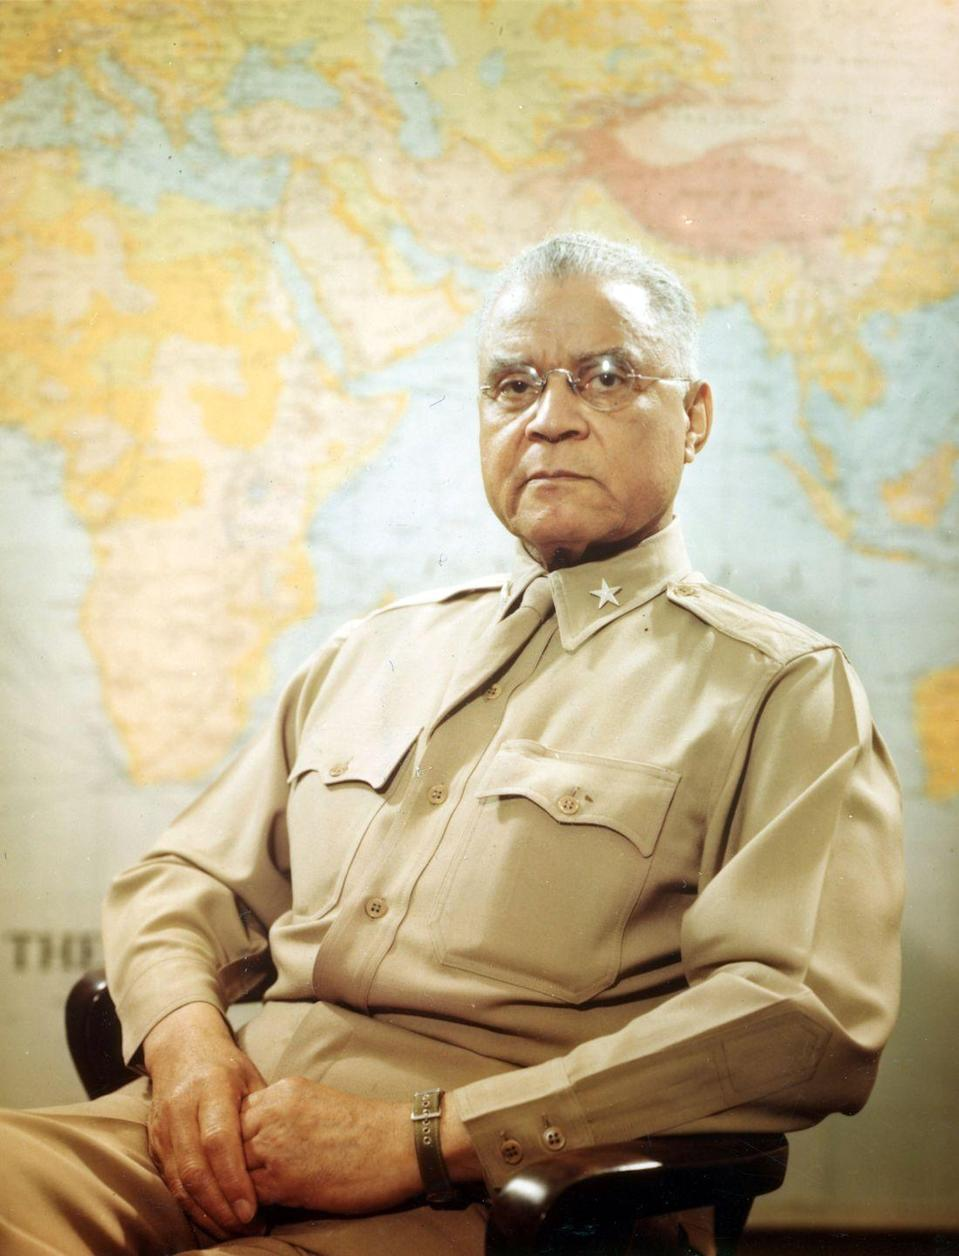 """<p>Benjamin O. Davis Sr. was the first Black general in the American military. He served for<a href=""""https://www.blackpast.org/african-american-history/davis-sr-benjamin-o-1877-1970-2/"""" rel=""""nofollow noopener"""" target=""""_blank"""" data-ylk=""""slk:50 years"""" class=""""link rapid-noclick-resp""""> 50 years</a> as a temporary first lieutenant at an all-Black unit during the Spanish American War. Throughout his service, Davis Sr. was as a professor of military science at Tuskegee and Wilberforce University, a commander of the 369th Regiment, New York National Guard, and special assistant to the Secretary of the Army. When he retired in 1948, President Harry Truman oversaw the public ceremony. Davis Sr. is buried at Arlington National Cemetery.</p>"""